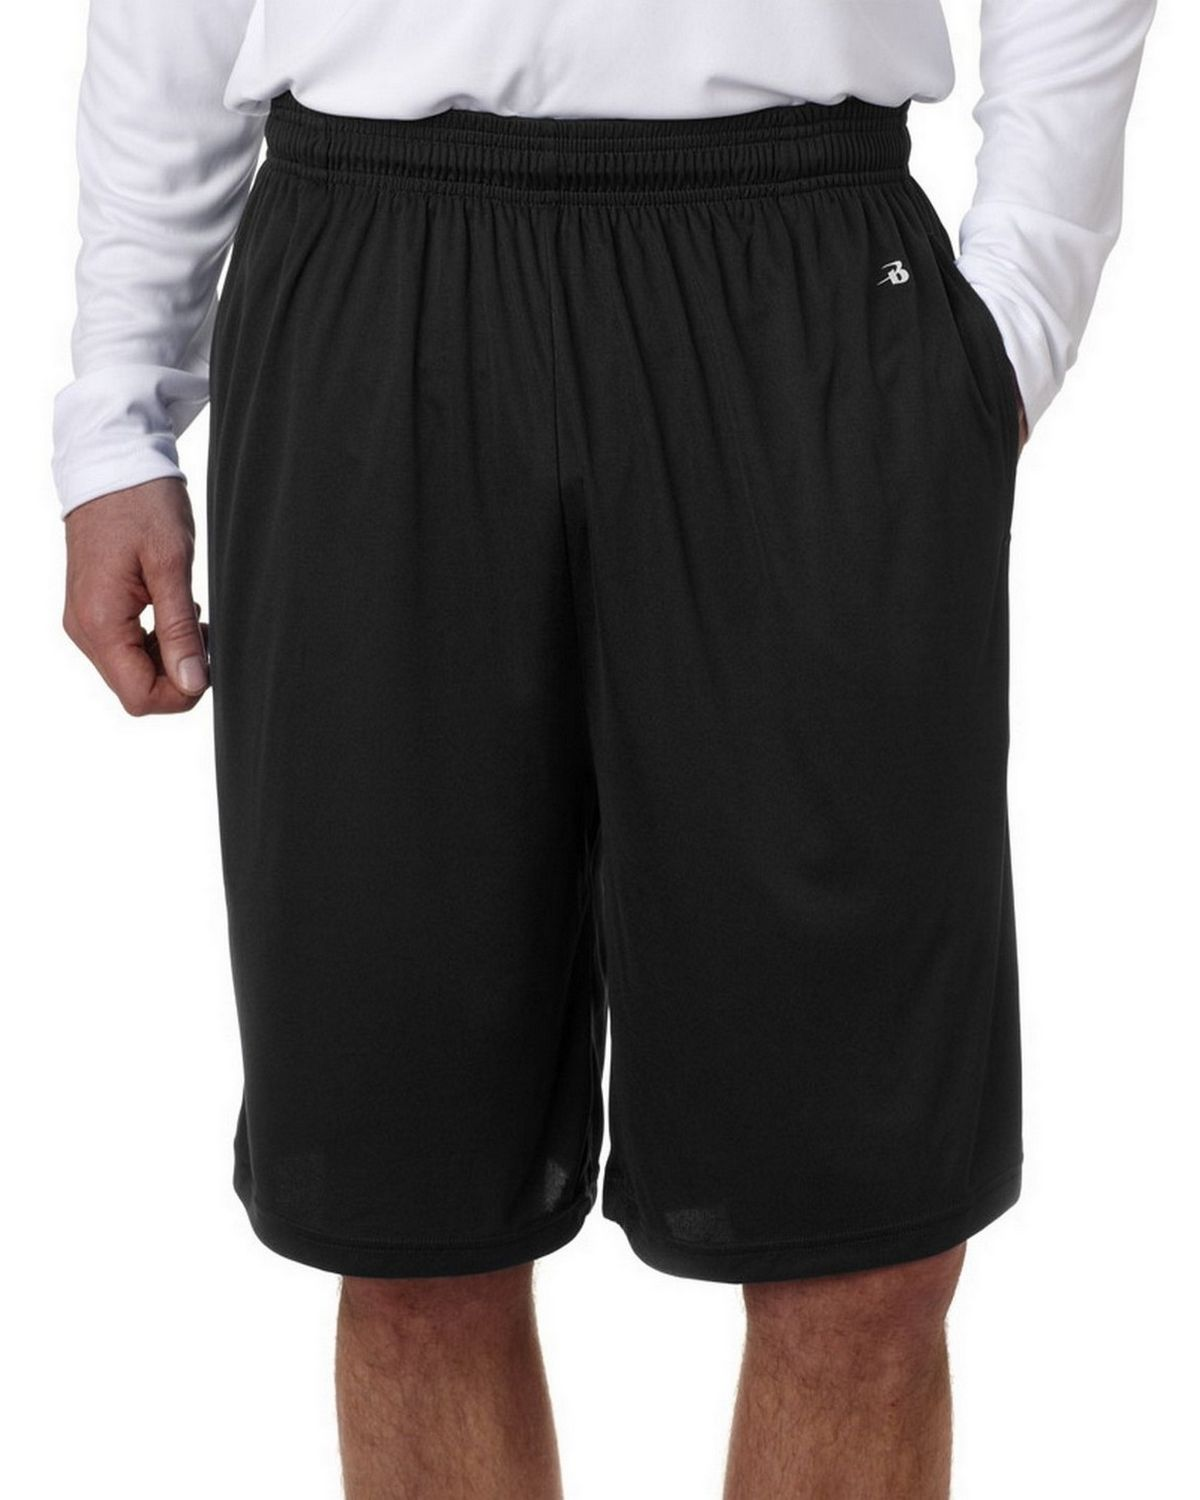 Badger 4119 BD Performance Shorts Pkt - Black - S 4119